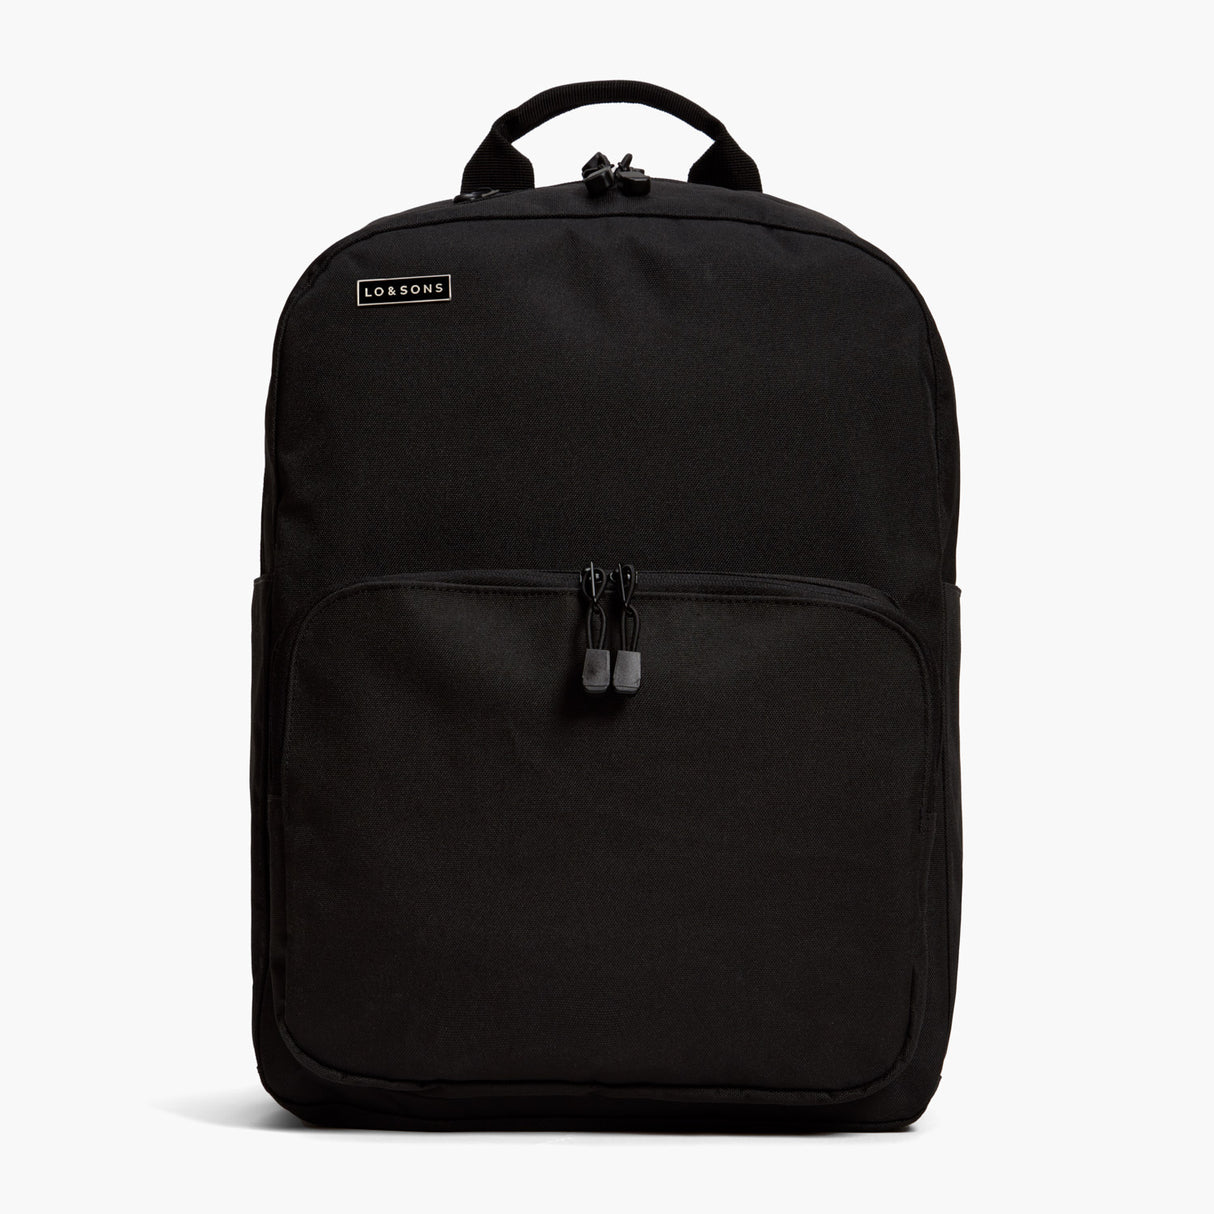 On Backpack - The Pin LS Wordmark - Metal - Black - Small Accessory - Lo & Sons